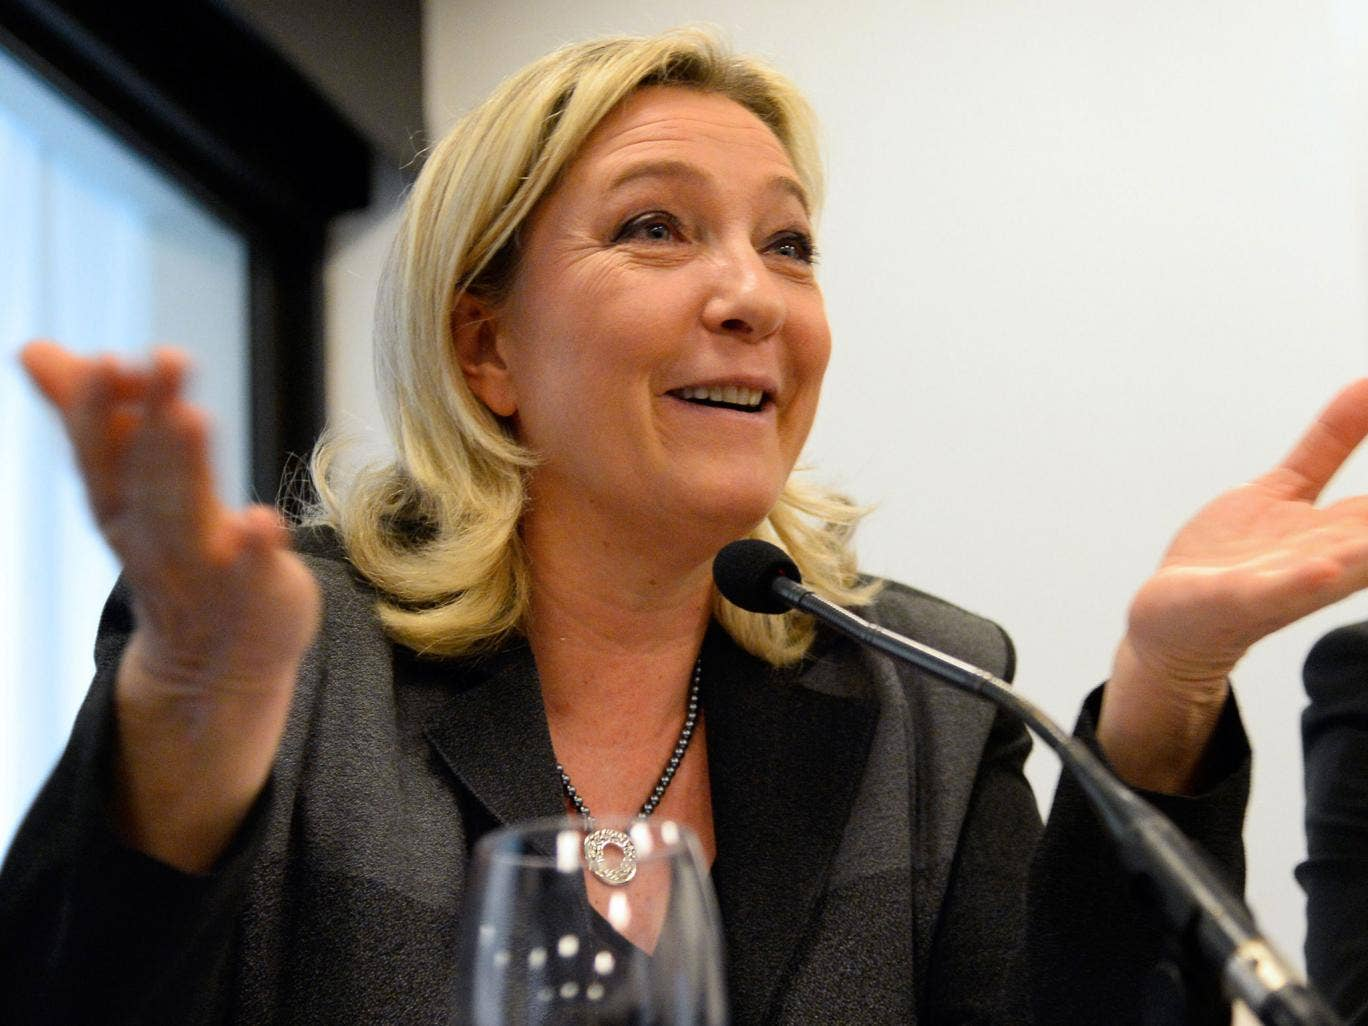 Marine Le Pen is facing the prospect of disappointing results in local elections in March